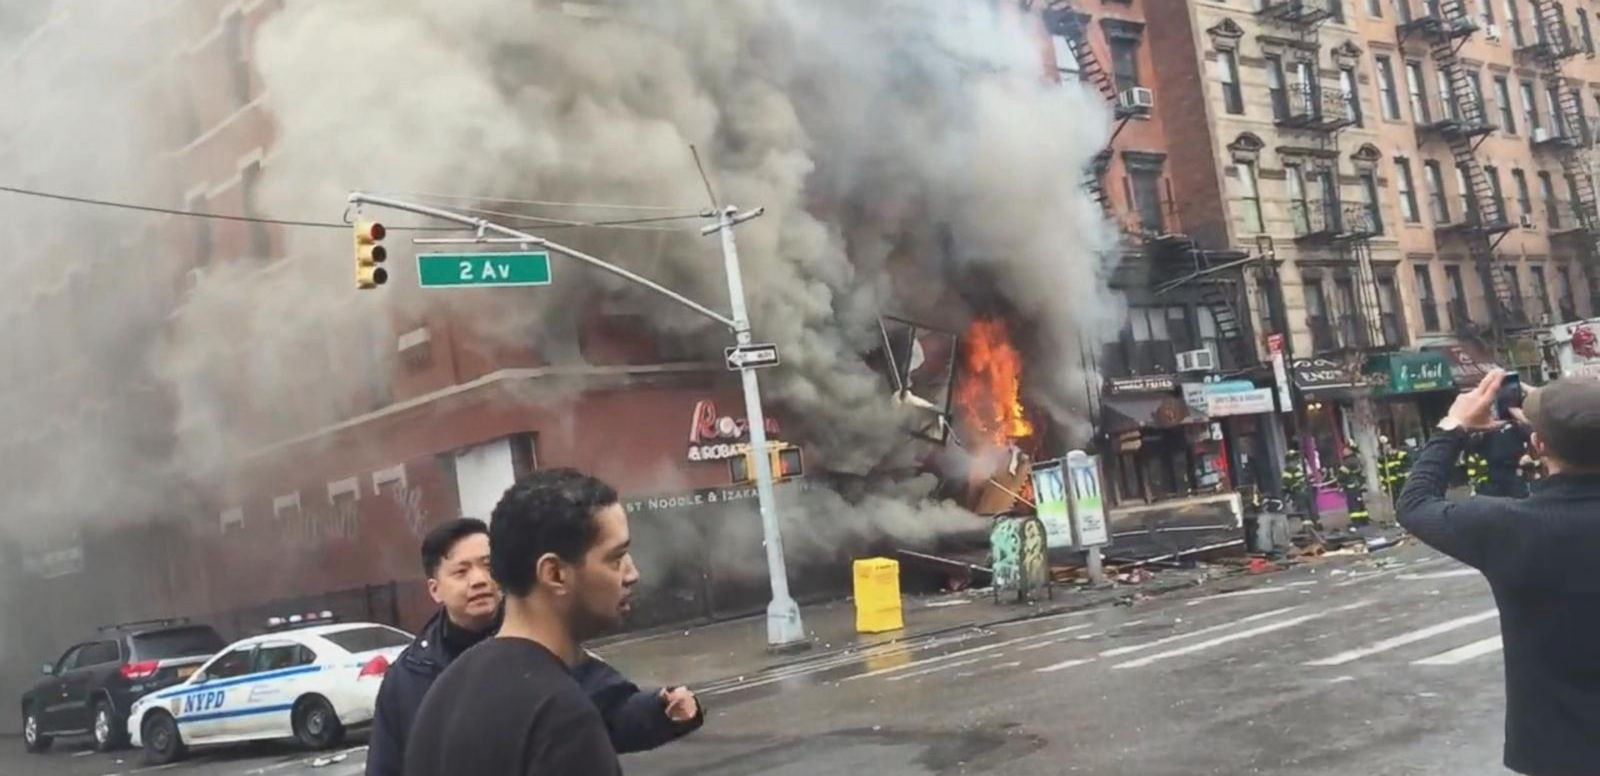 VIDEO: Two Bodies Recovered From New York City Explosion Site